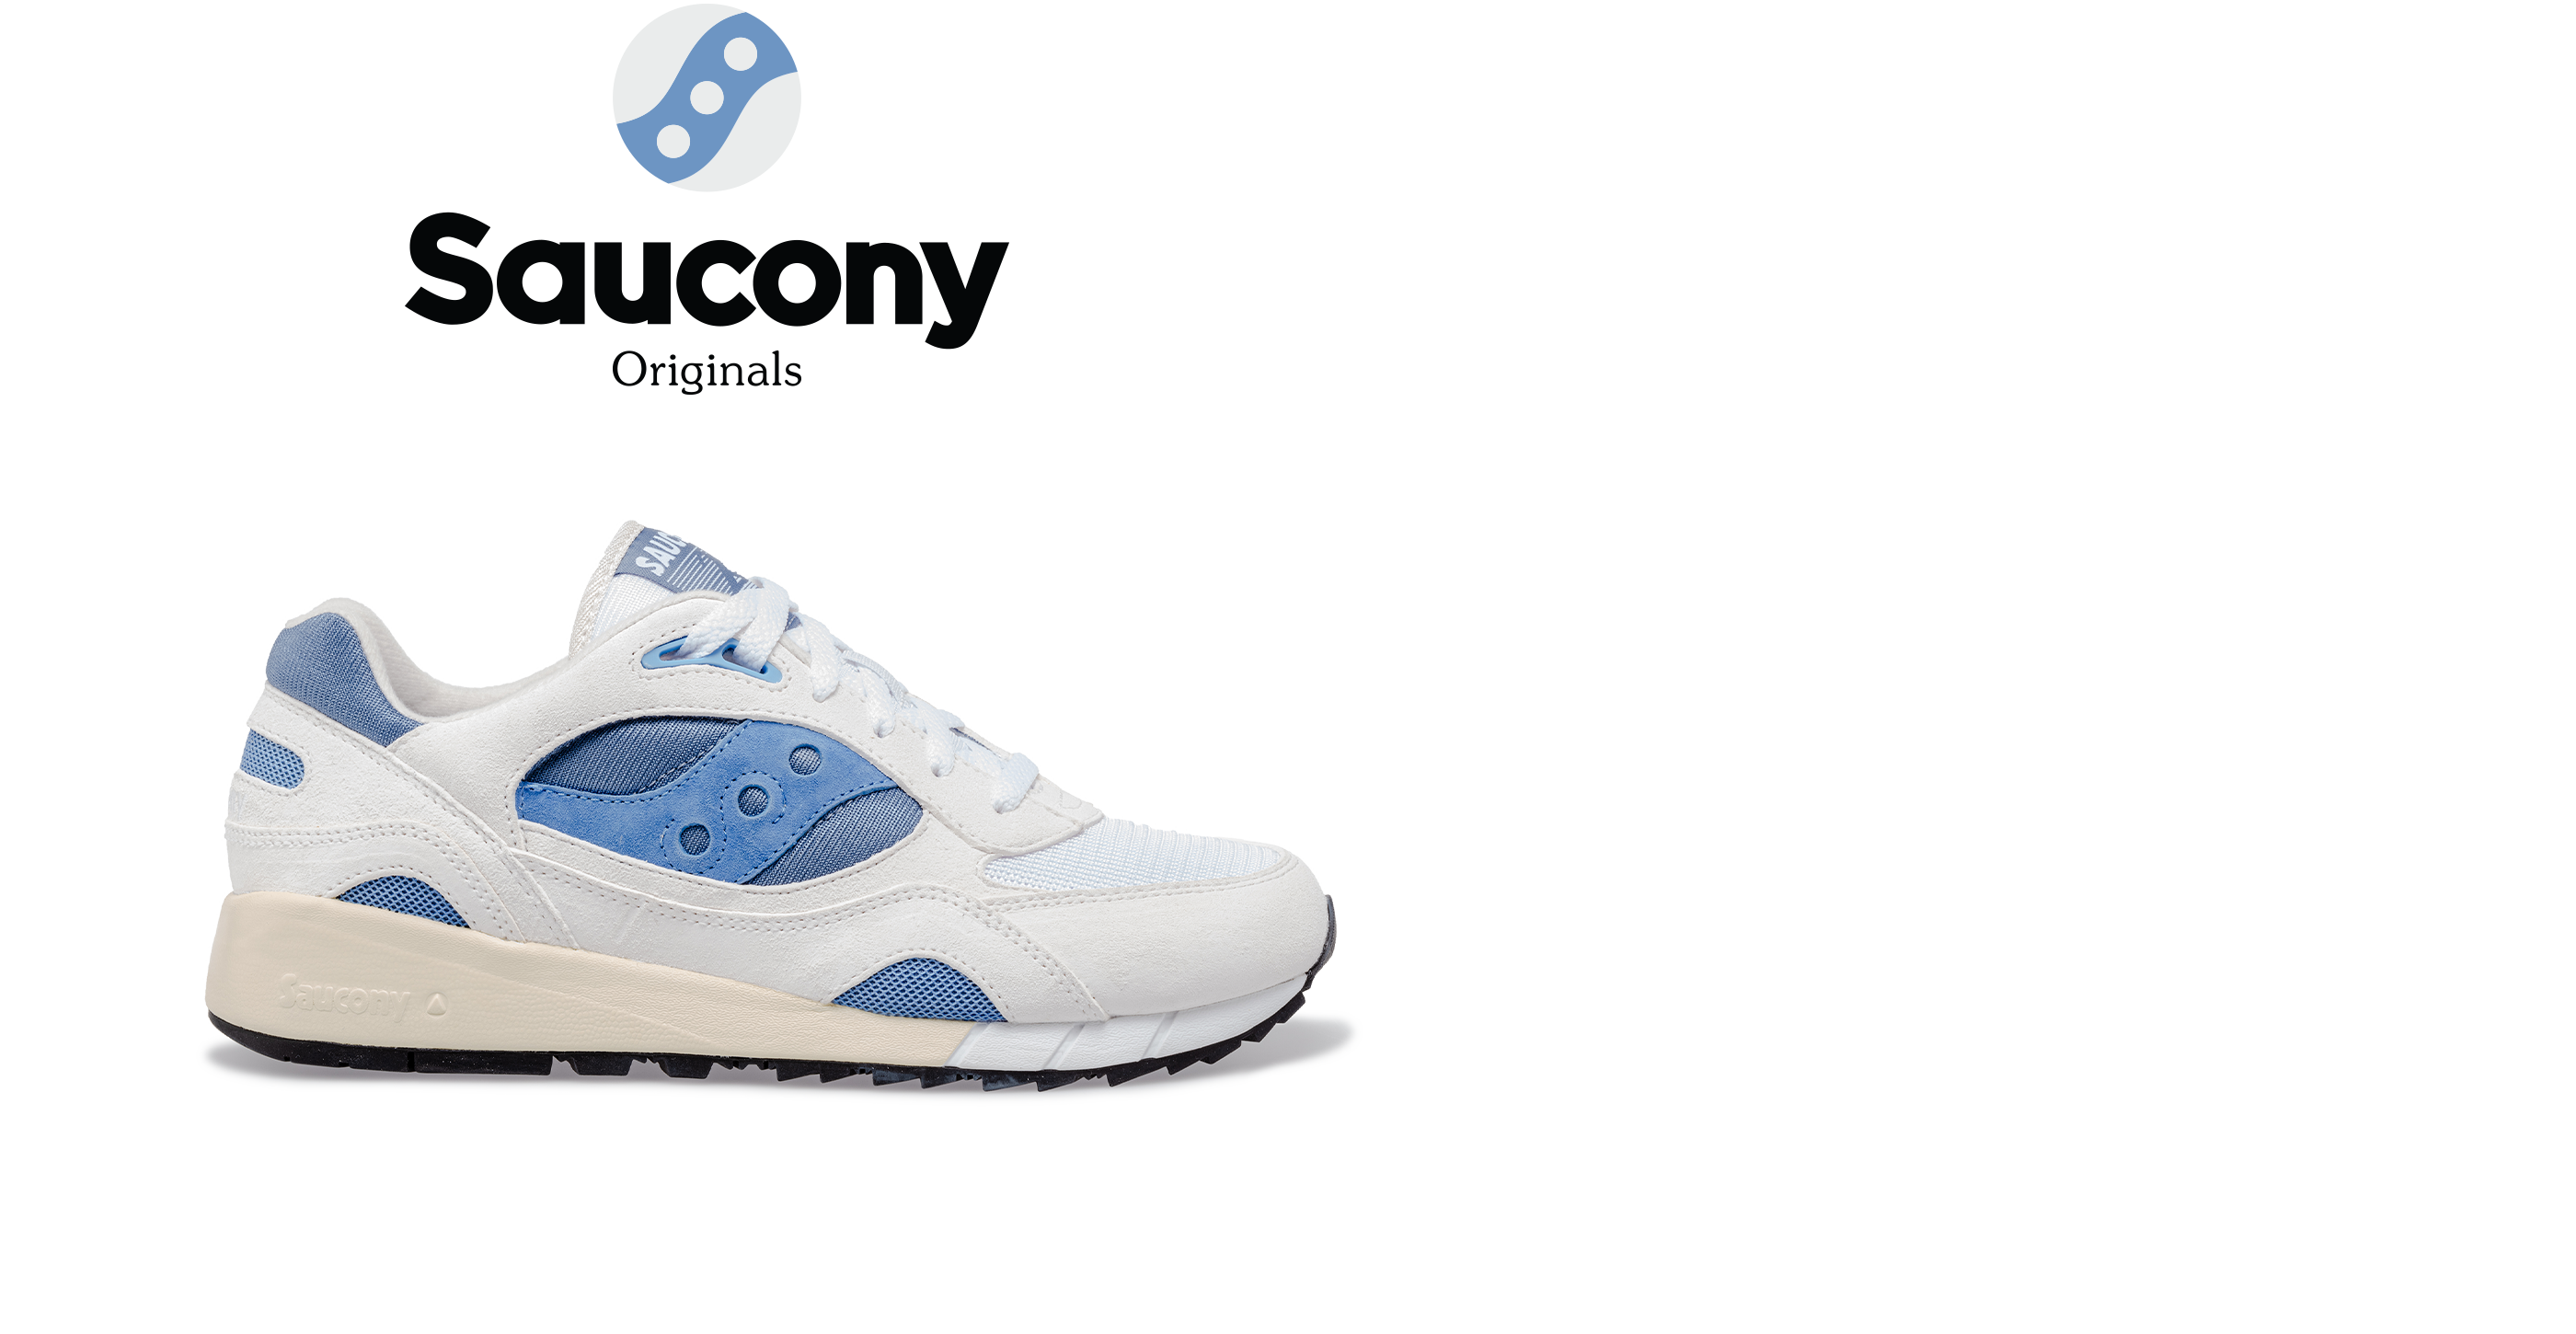 Saucony Shadow 6000 in white with blue accents.